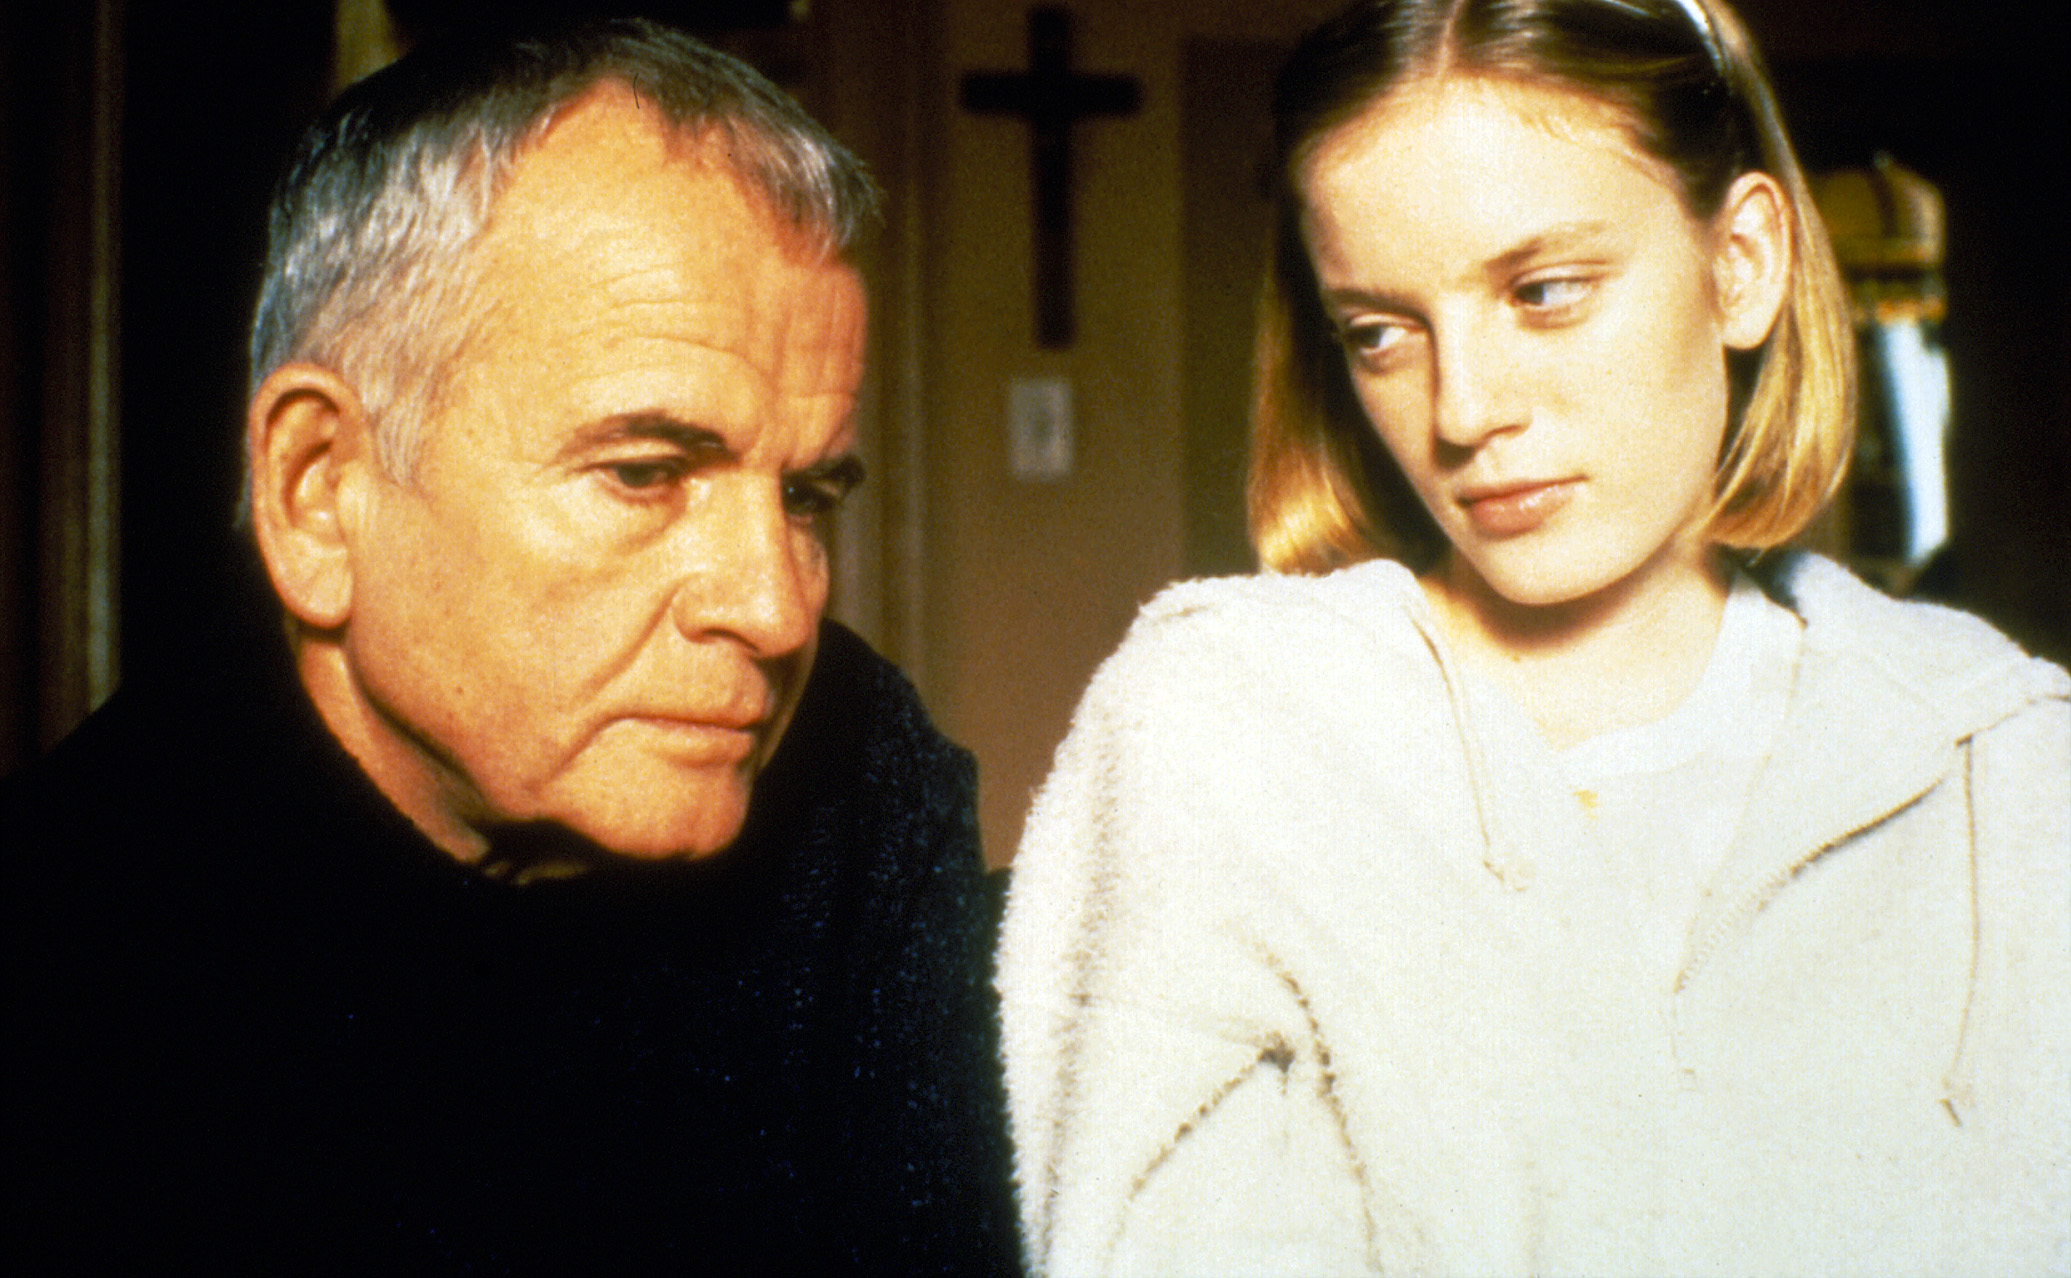 Ian Holm (left) and Sarah Polley in The Sweet Hereafter